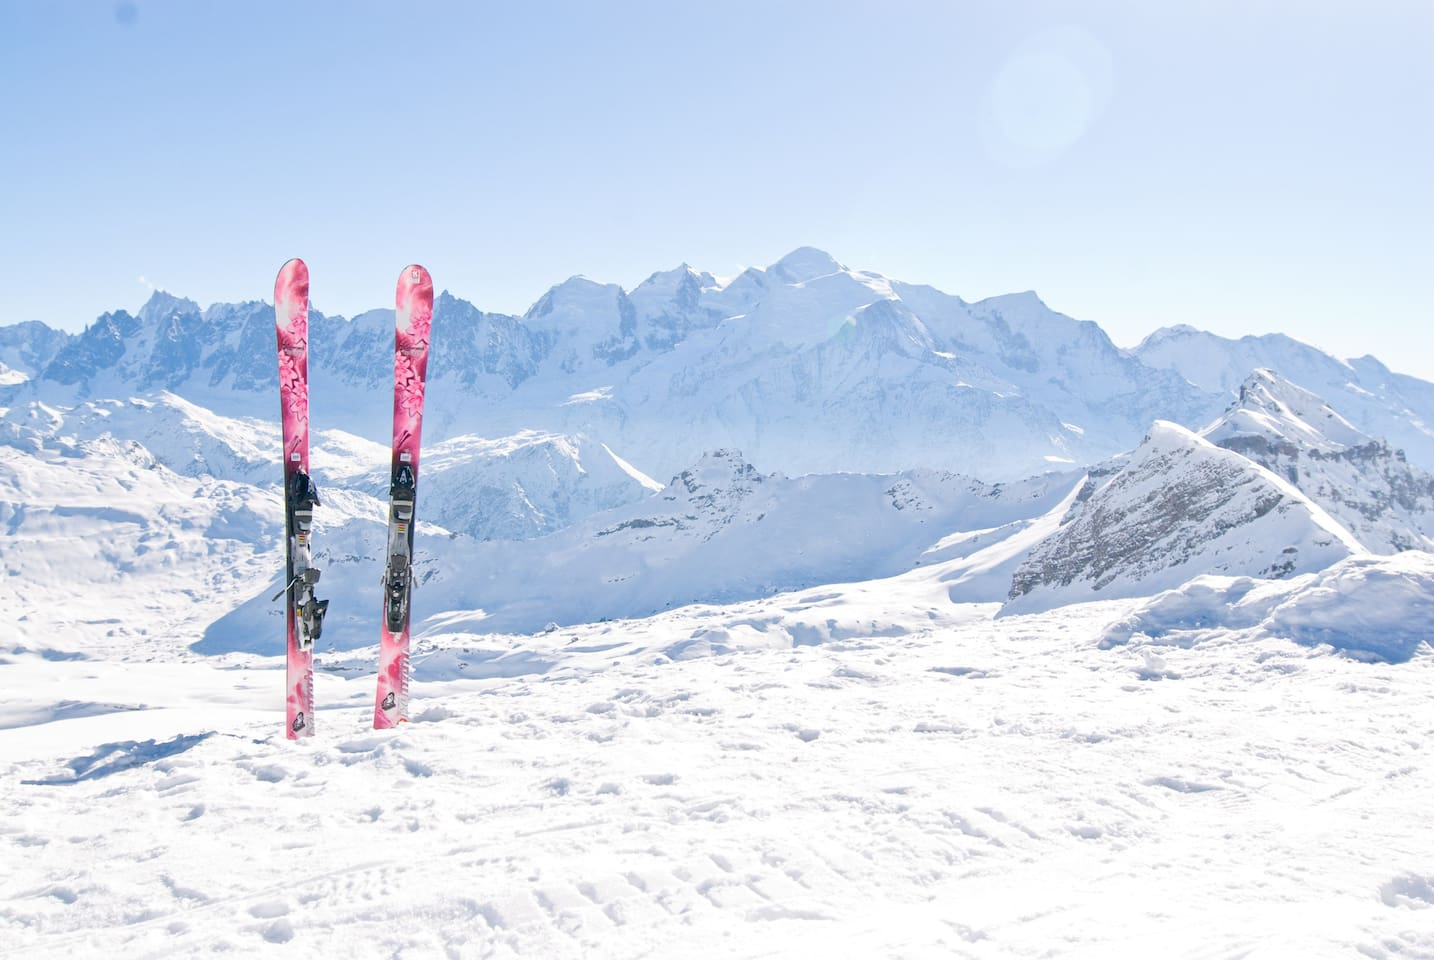 You will love to ski these award-winning slopes!